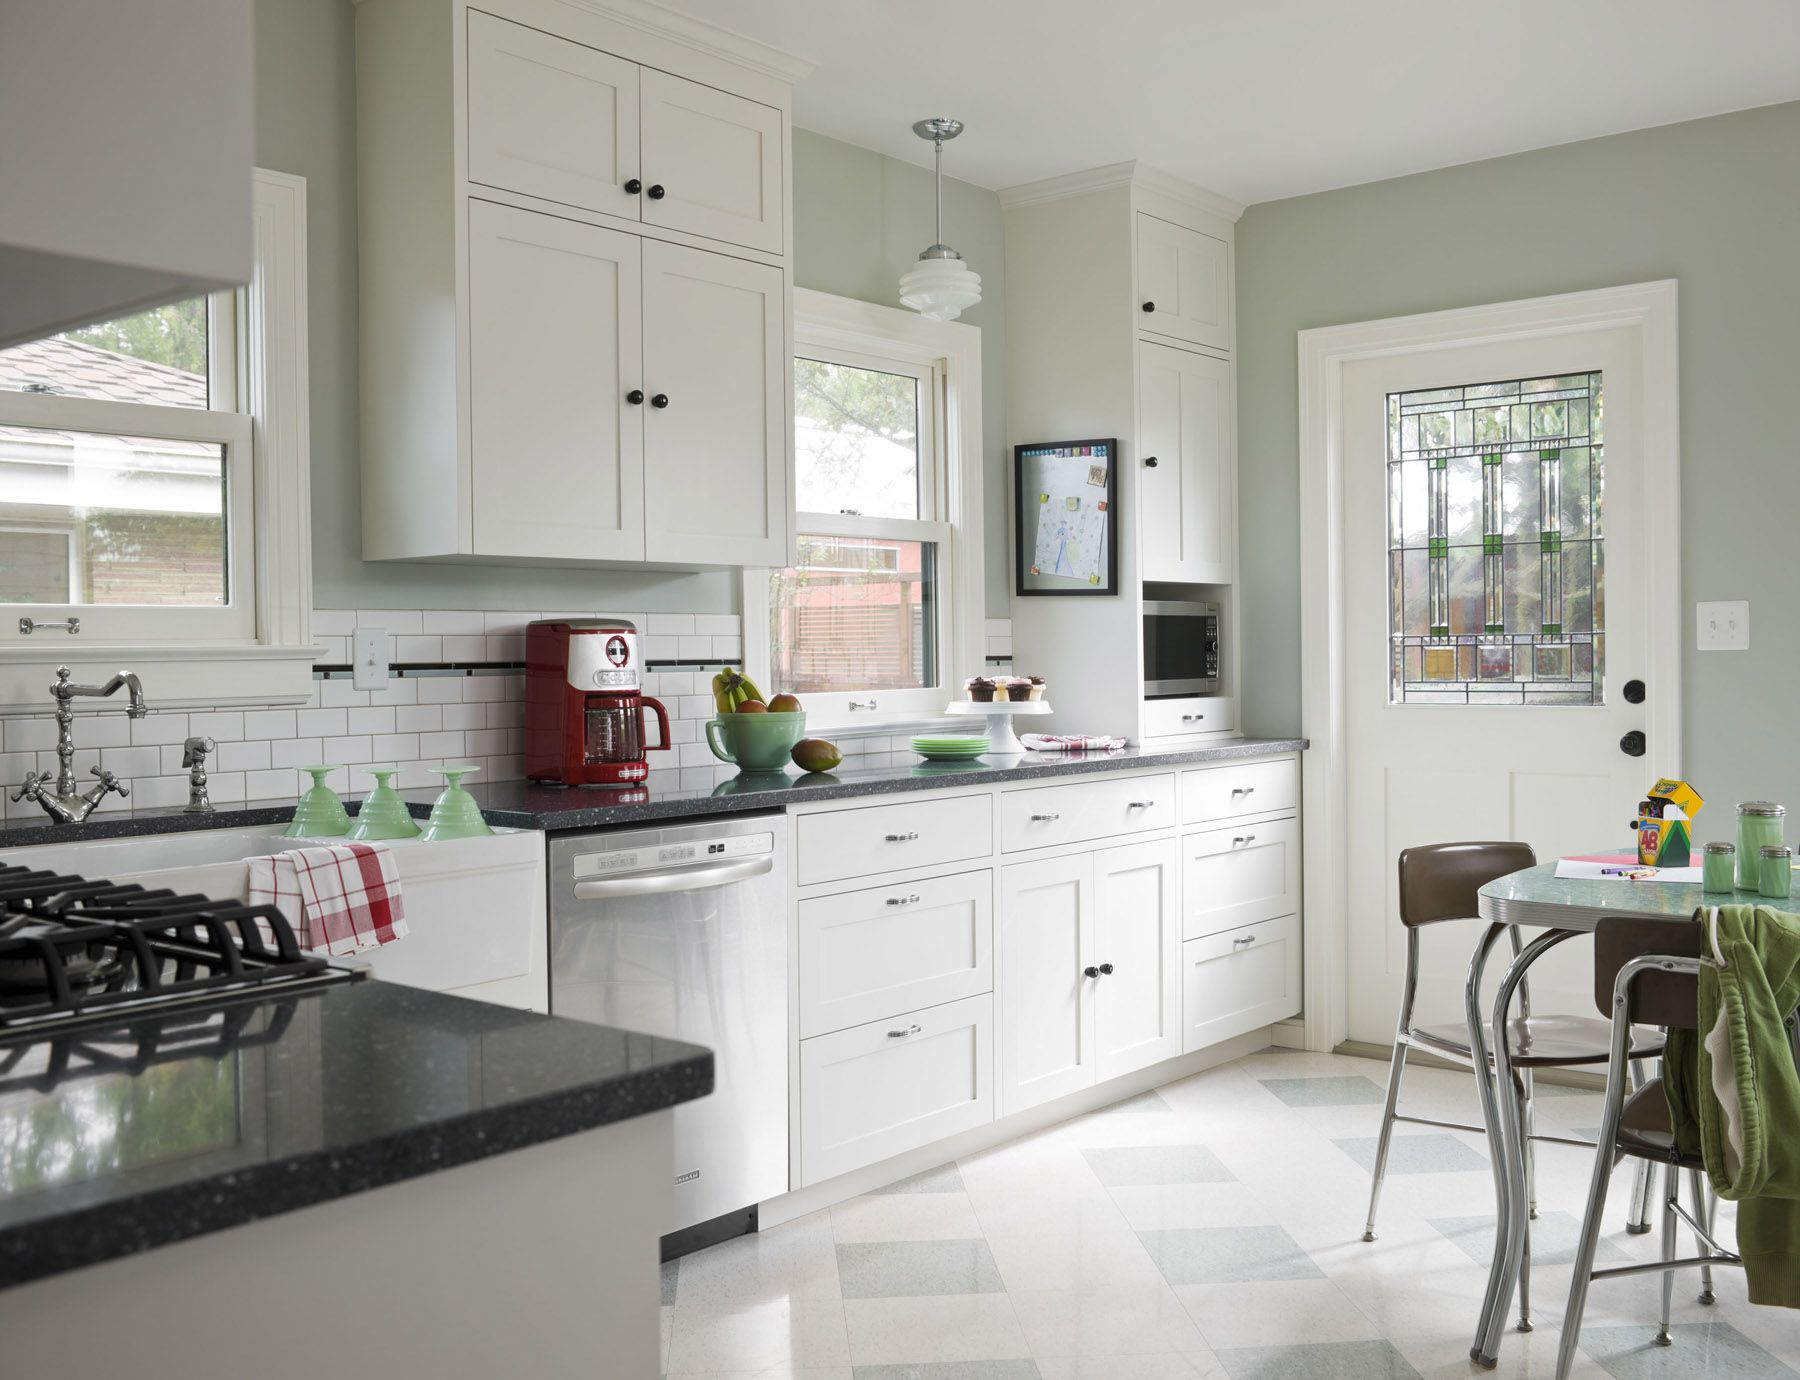 Our vintage kitchen remodel in This Old House Magazine. | Rick and ...